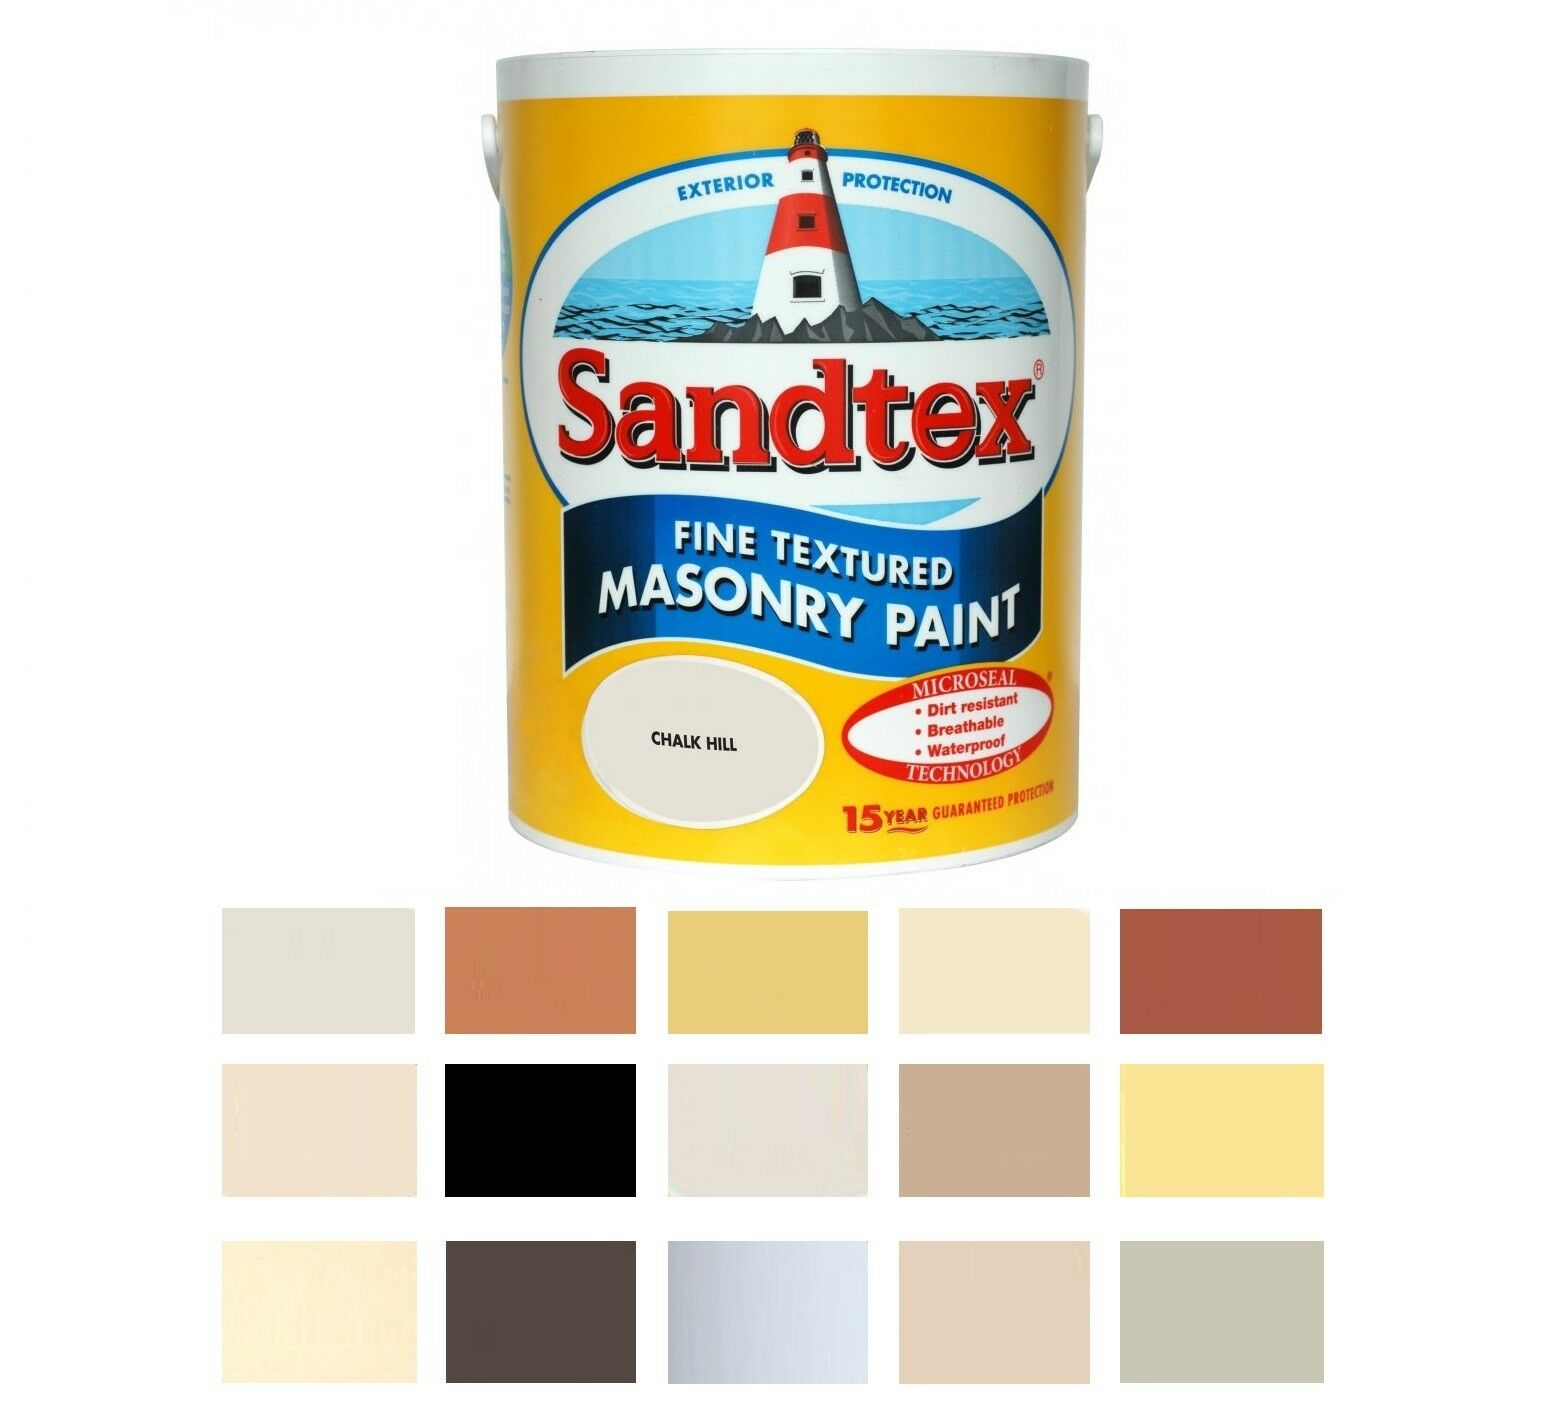 Sandtex Masonry Paint 5L Fine Textured Quality Waterproof 15